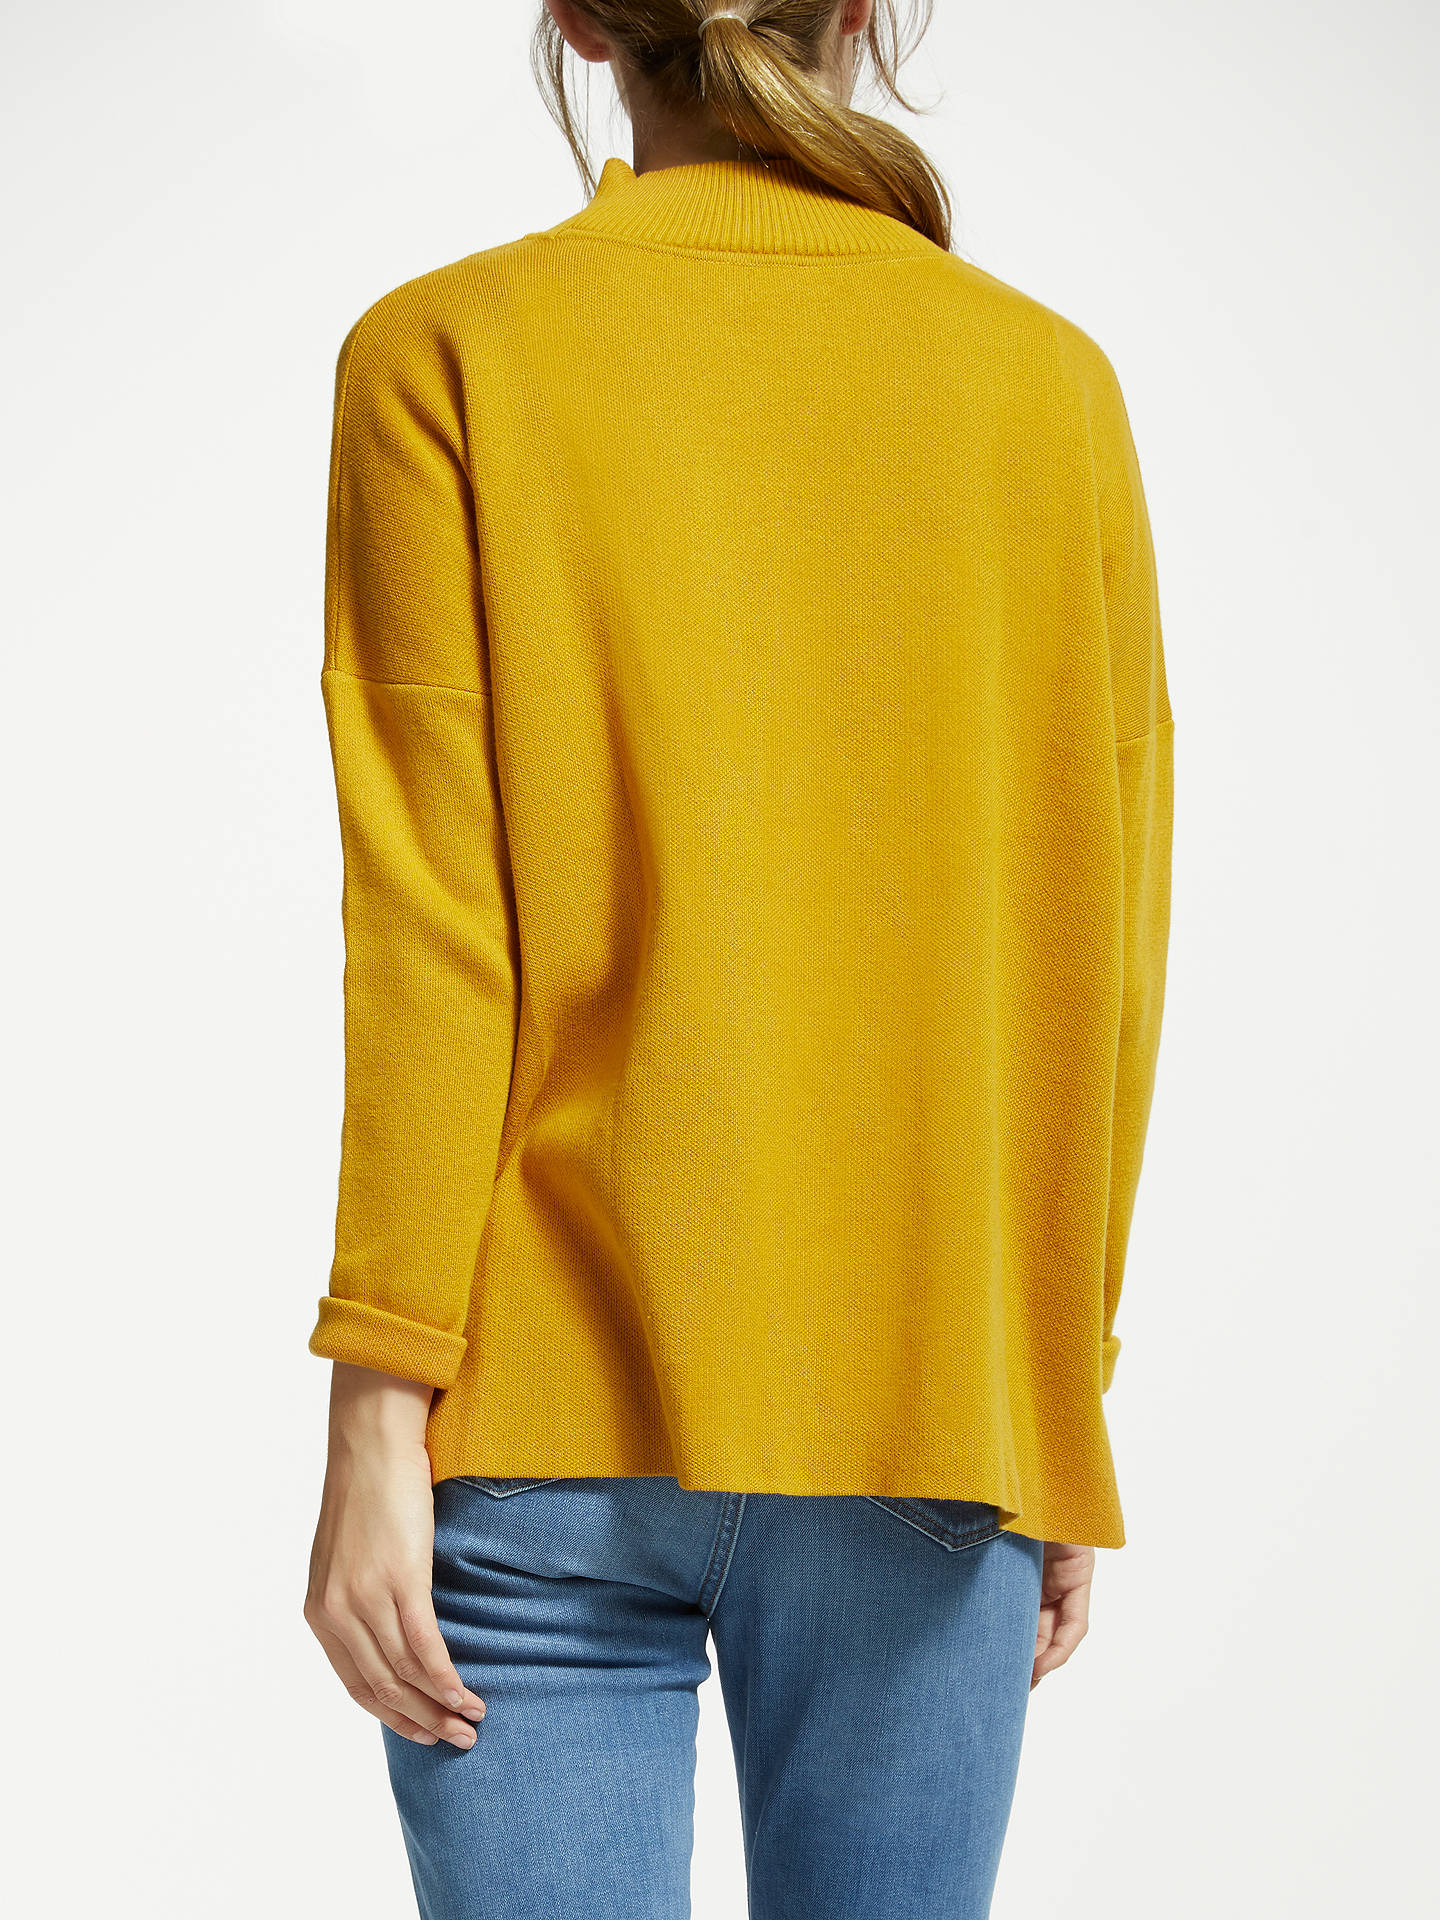 BuyARMEDANGELS Yuna Organic Cotton Jumper, Gold Yellow, XS Online at johnlewis.com